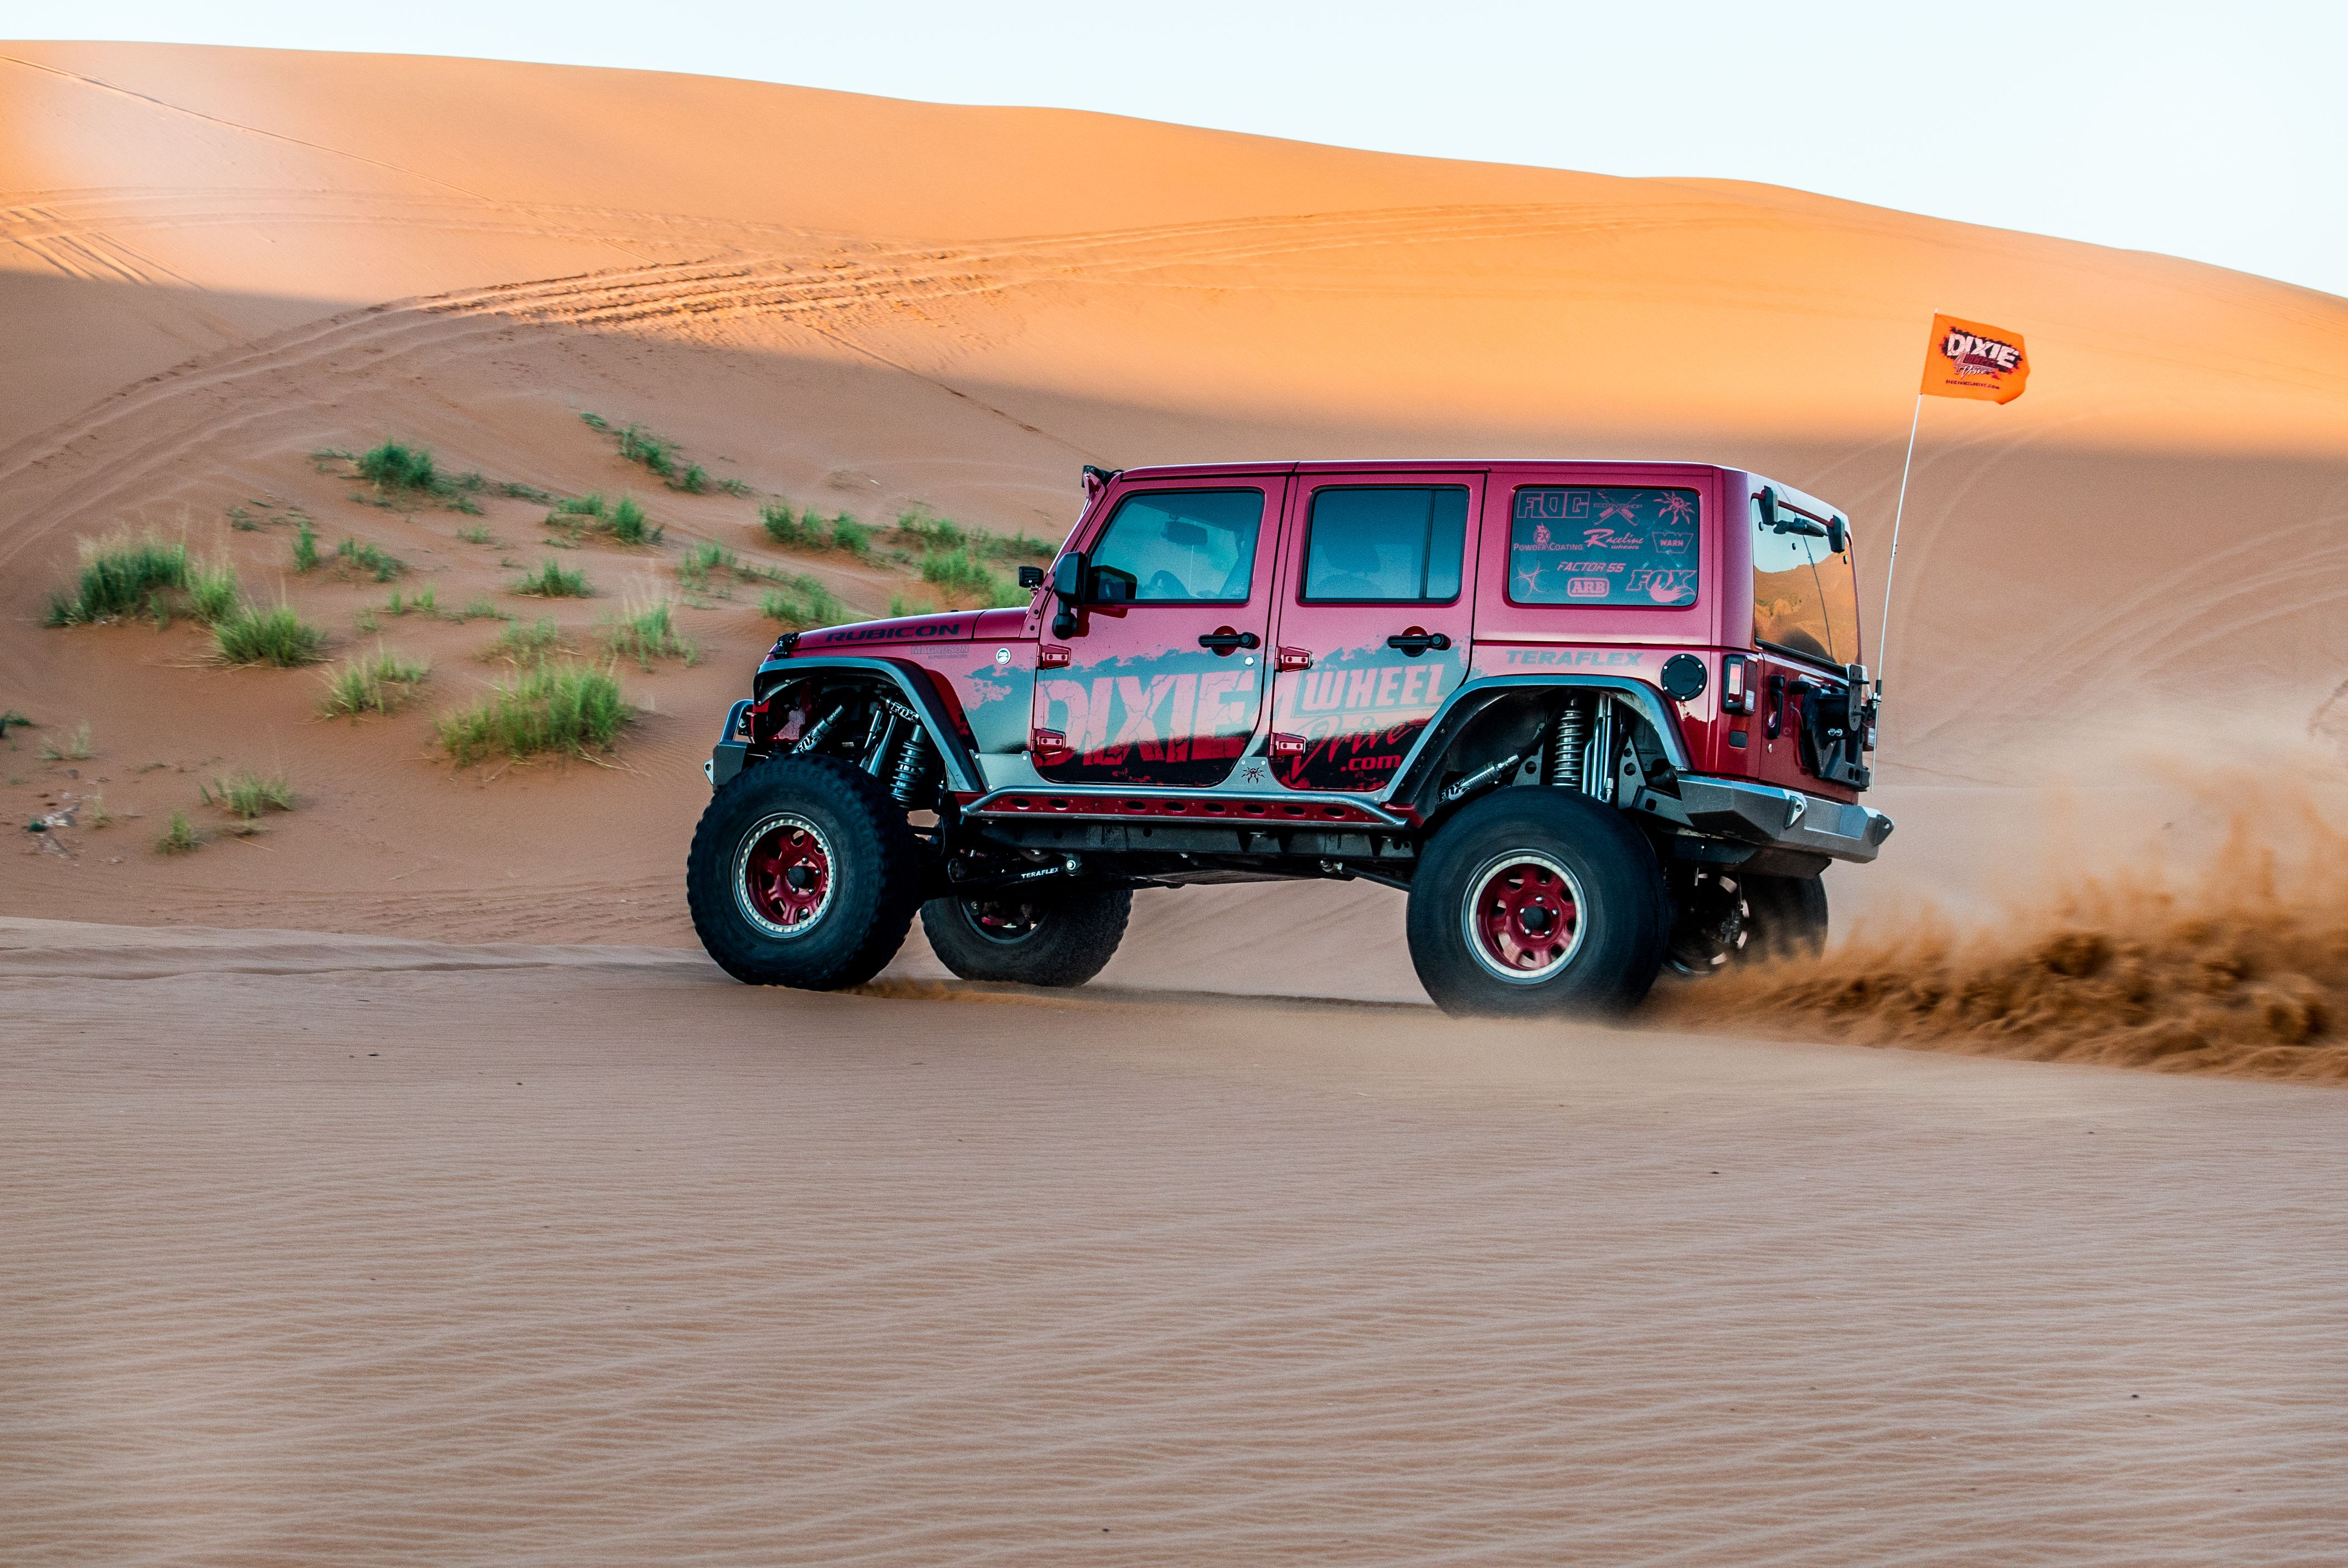 Dixie 4 wheel drive jeep running the dunes at sandhollow state park in st george